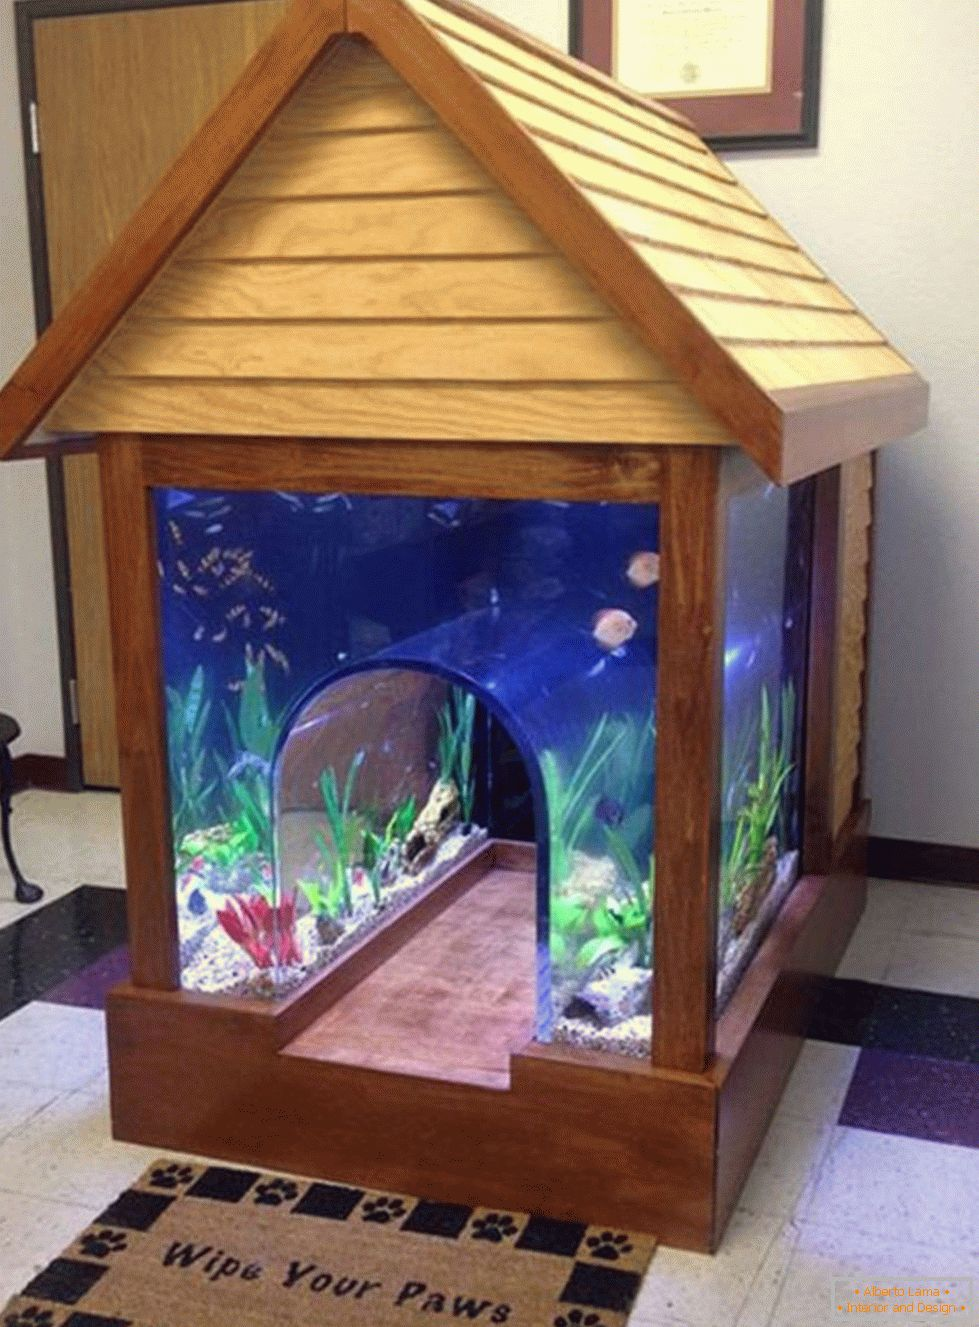 Aquarium in the form of a booth